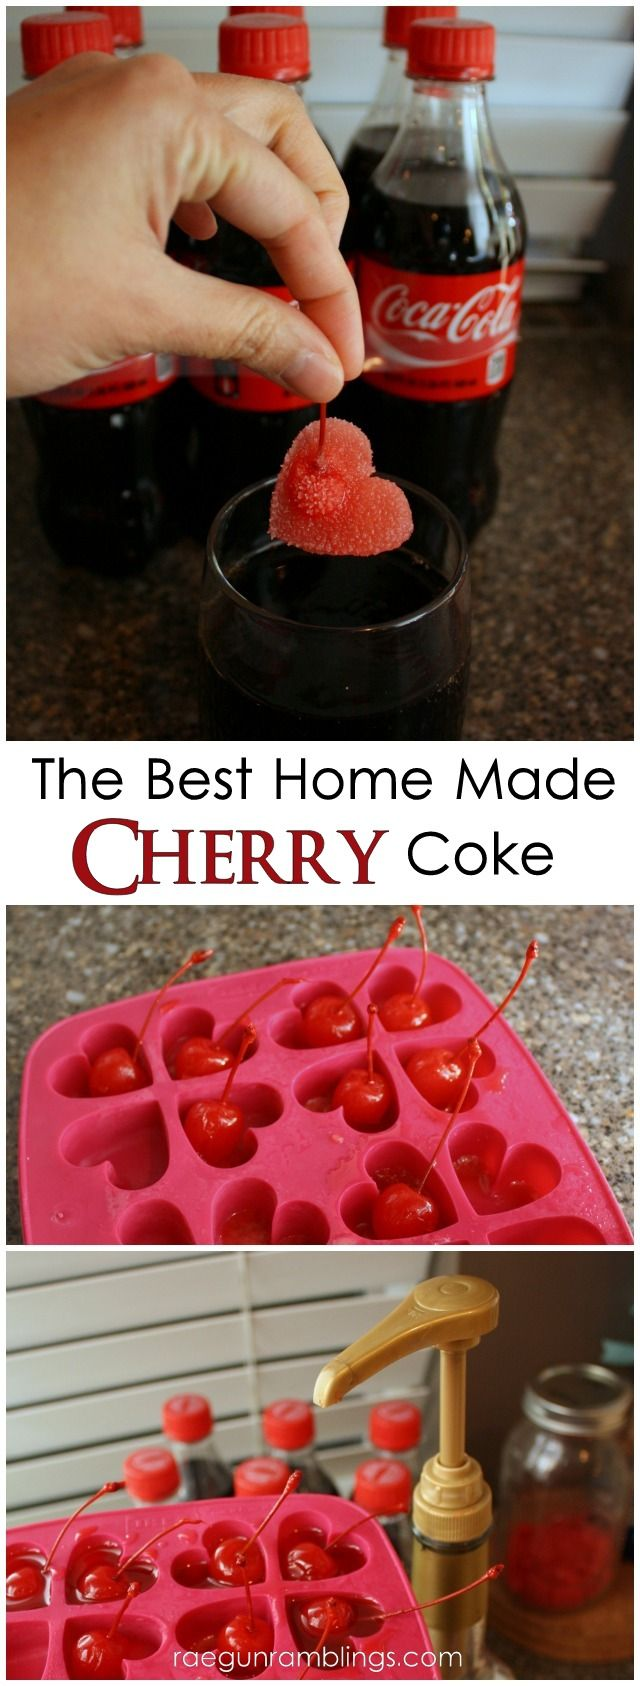 The secret to getting the perfect soda shop tasting cherry coke at home - Rae Gun Ramblings. The best Homemade Cherry Coke.